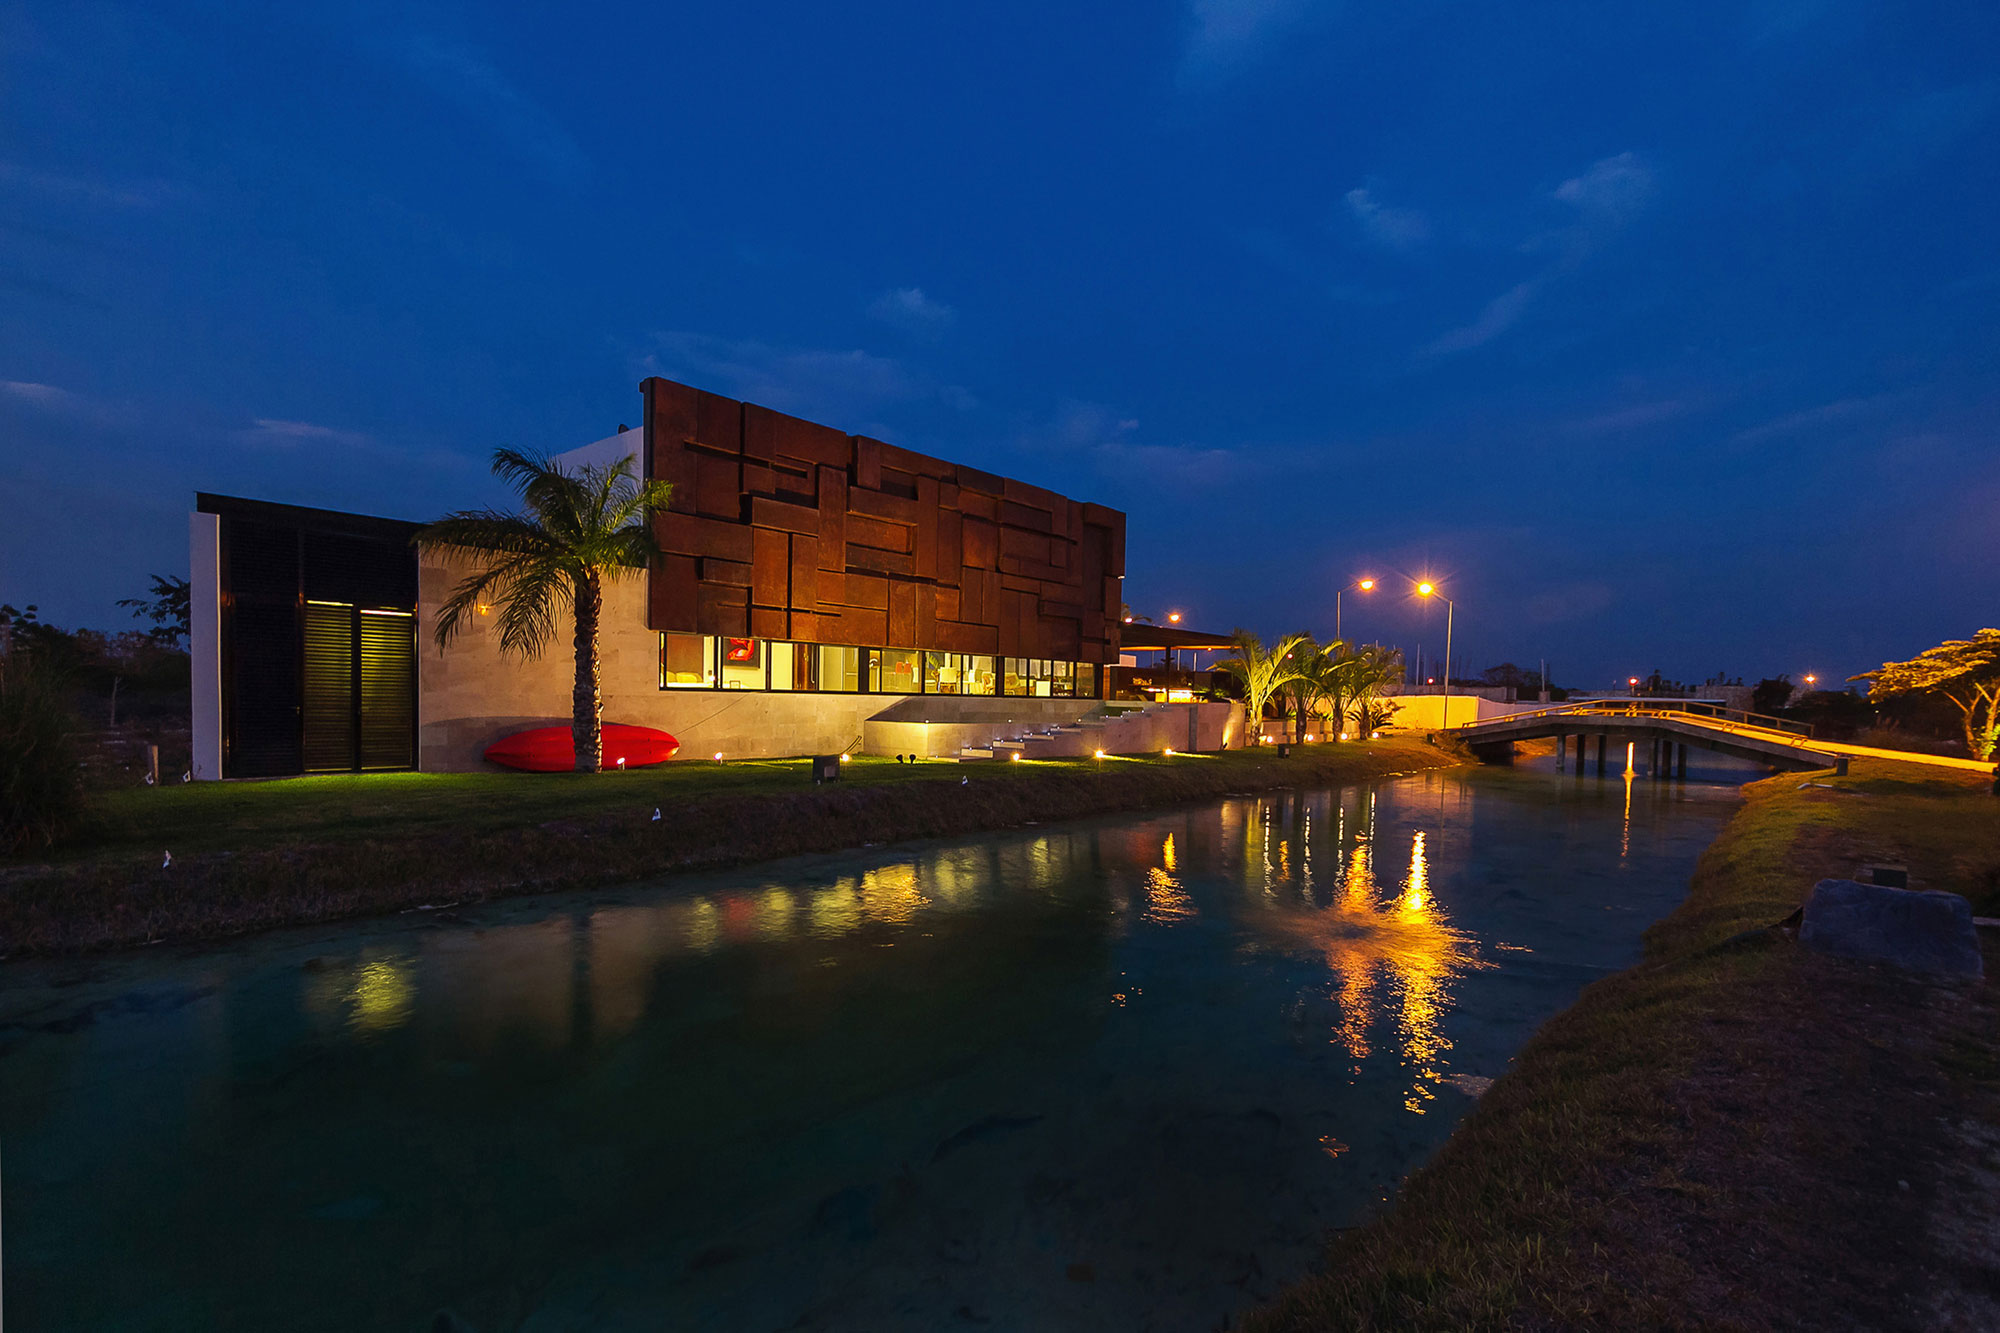 River, Bridge, Evening Lighting, Contemporary Residence in Merida, Yucatan